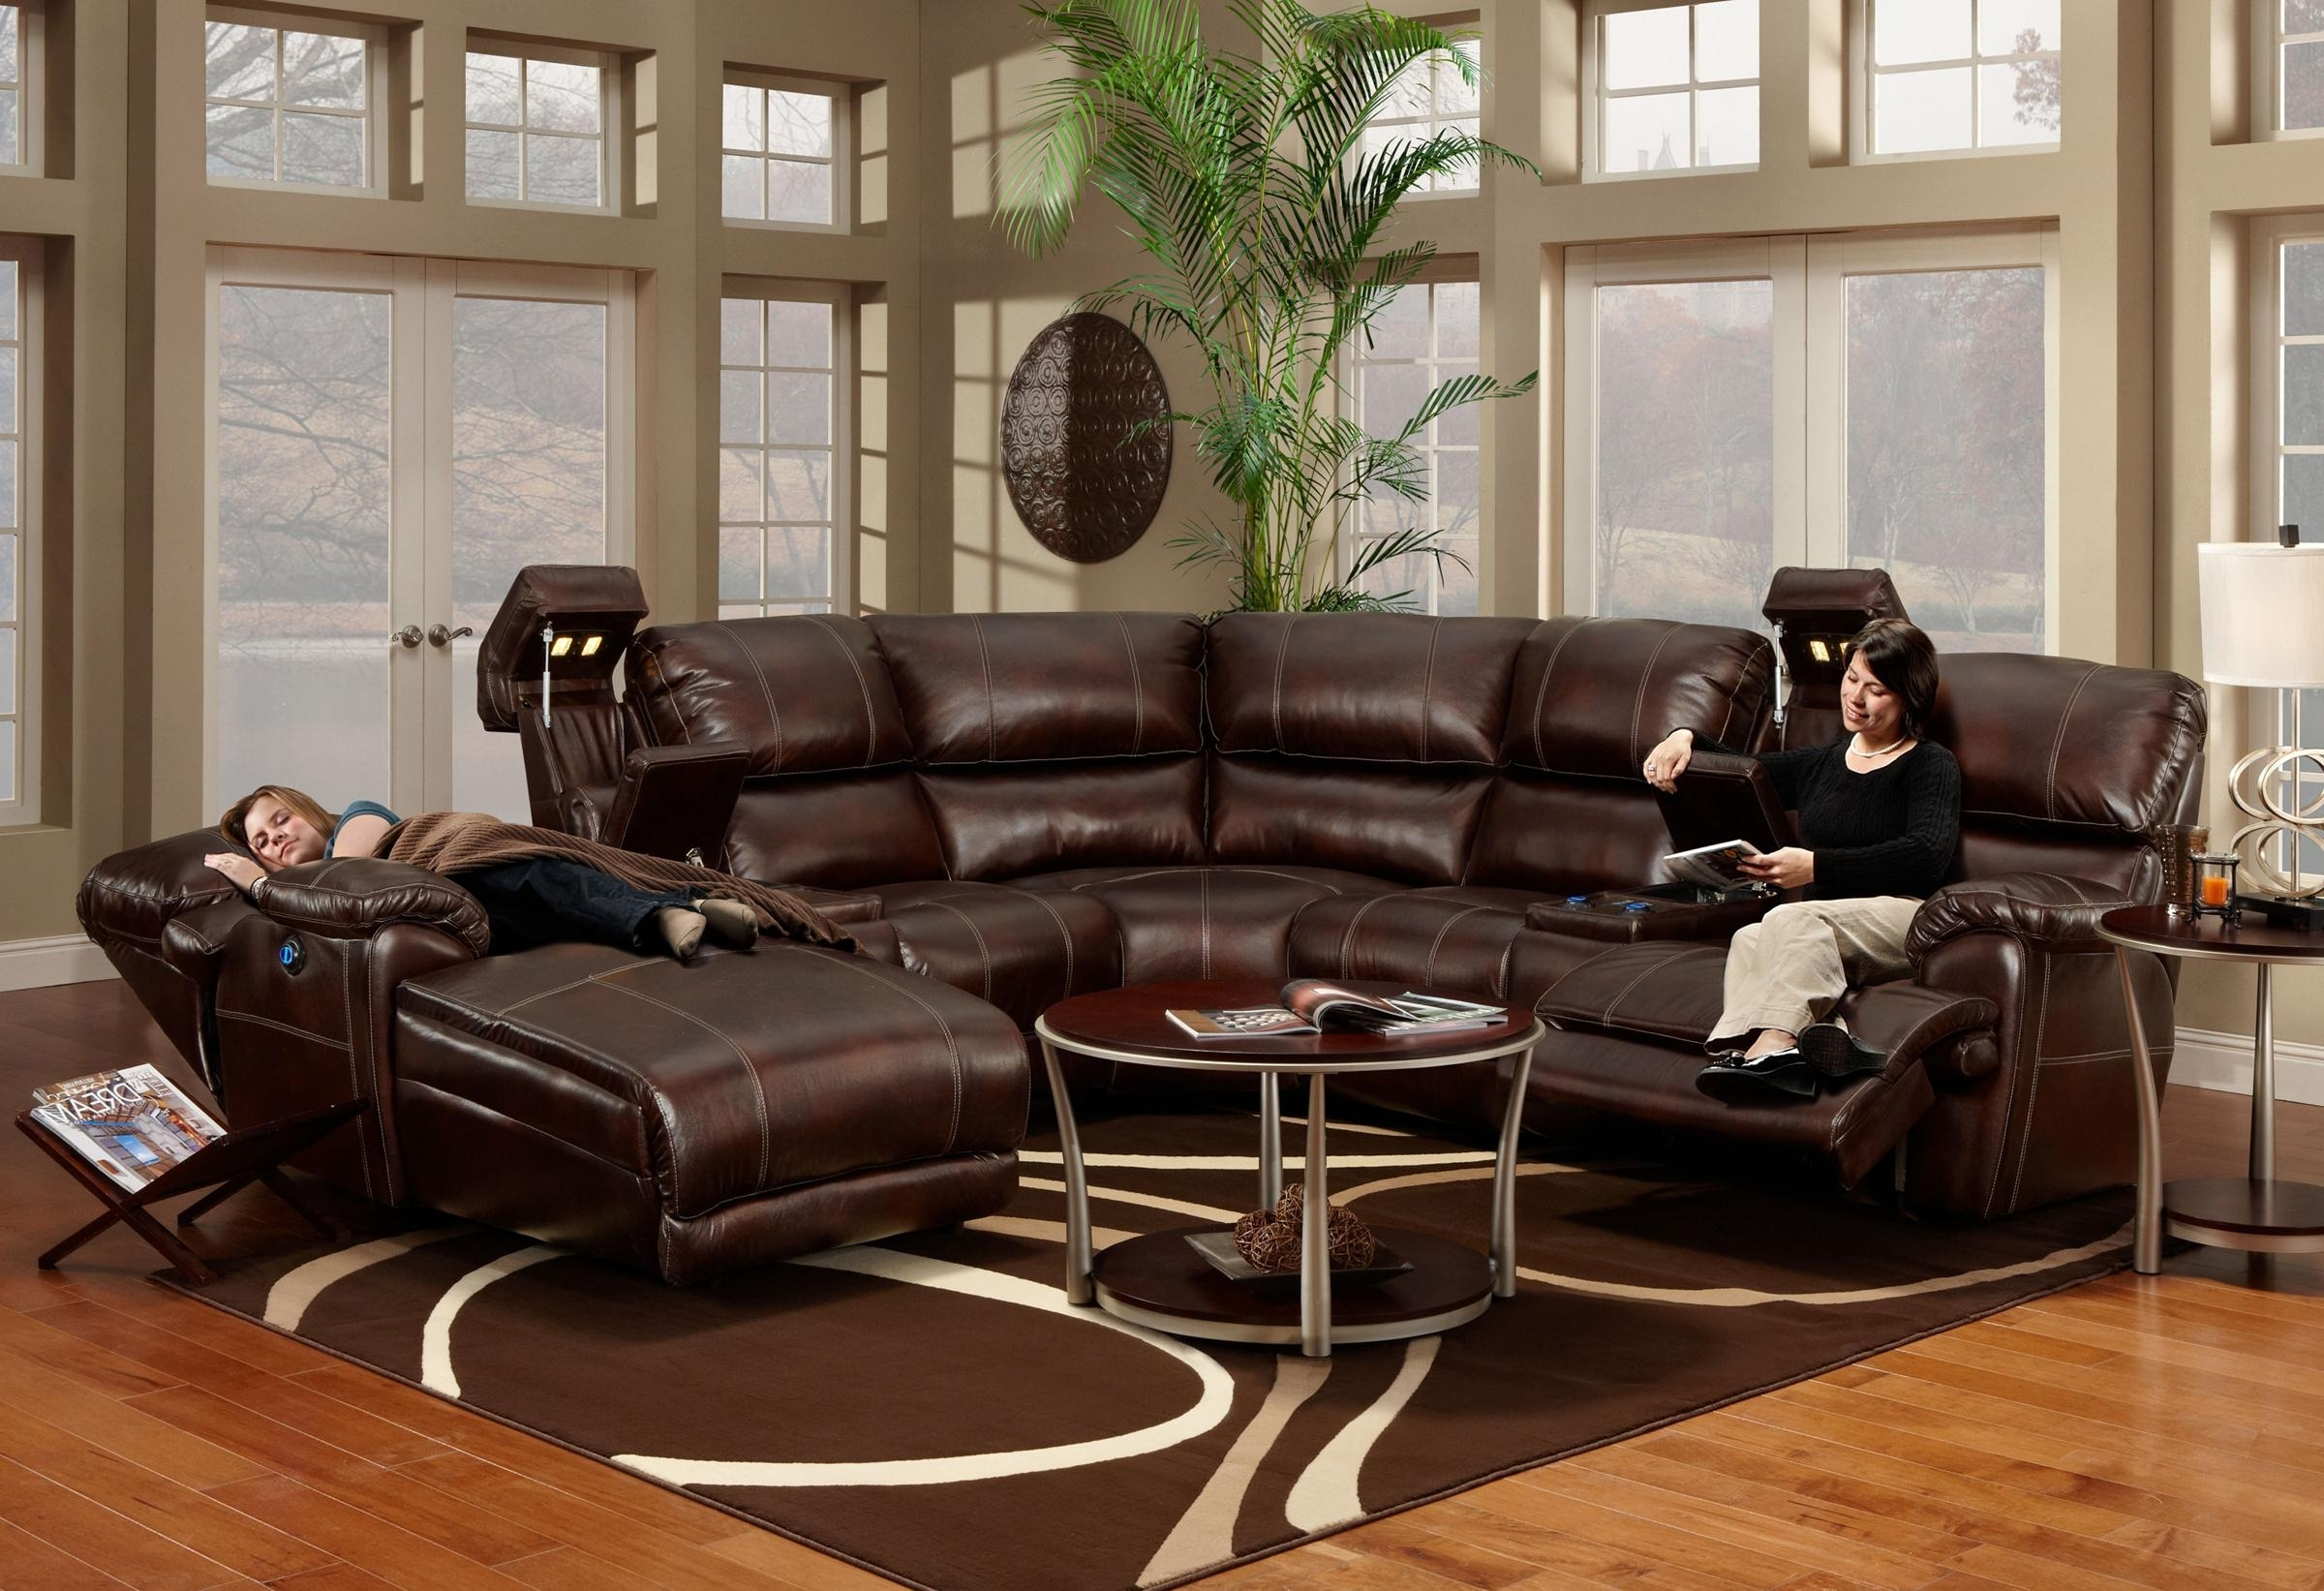 Kansas City Sectional Sofas Throughout Widely Used Franklin 572 Reclining Sectional Sofa With Chaise – Ahfa – Sofa (View 10 of 15)